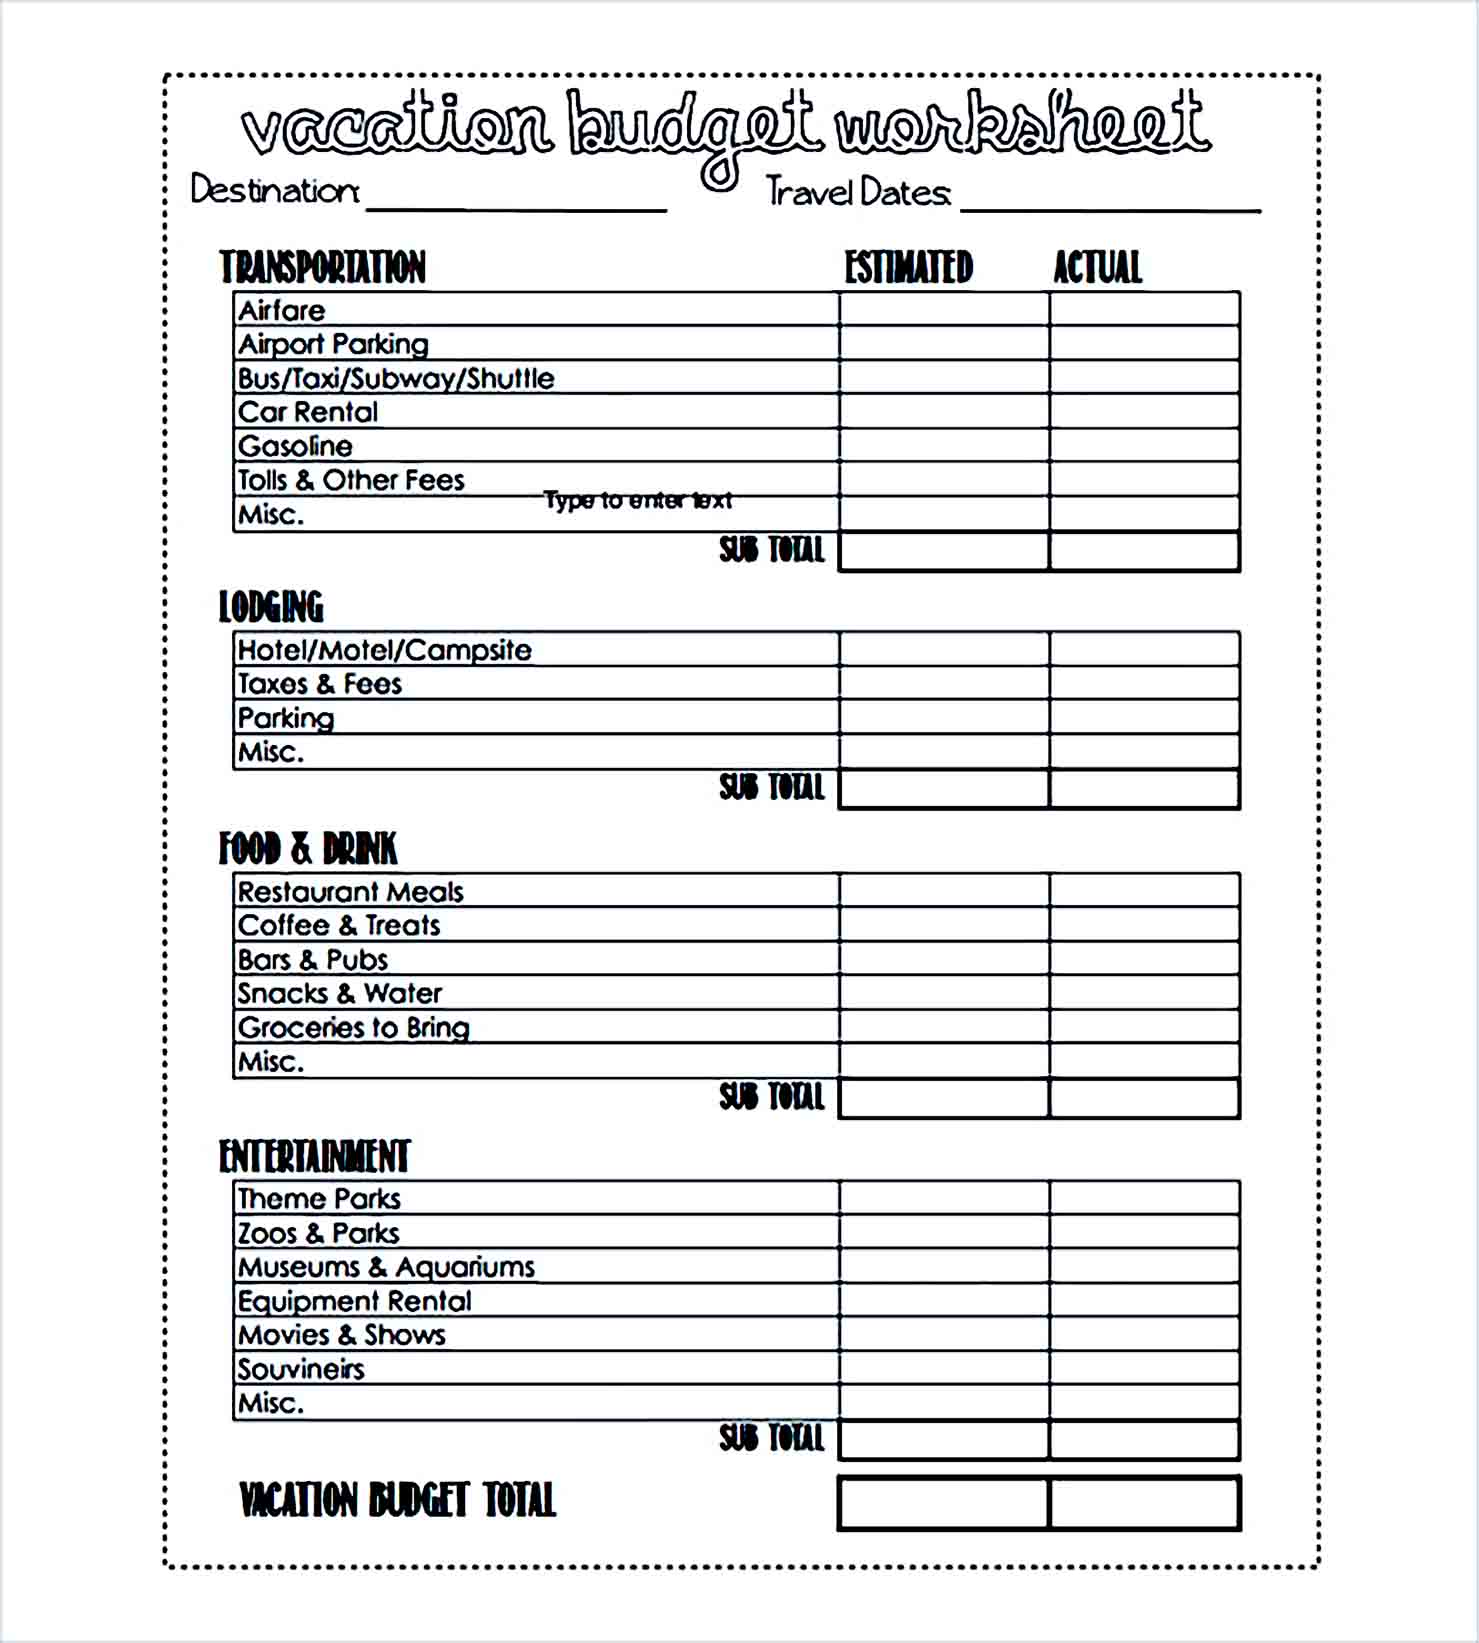 Sample vacation budget worksheet printable 1